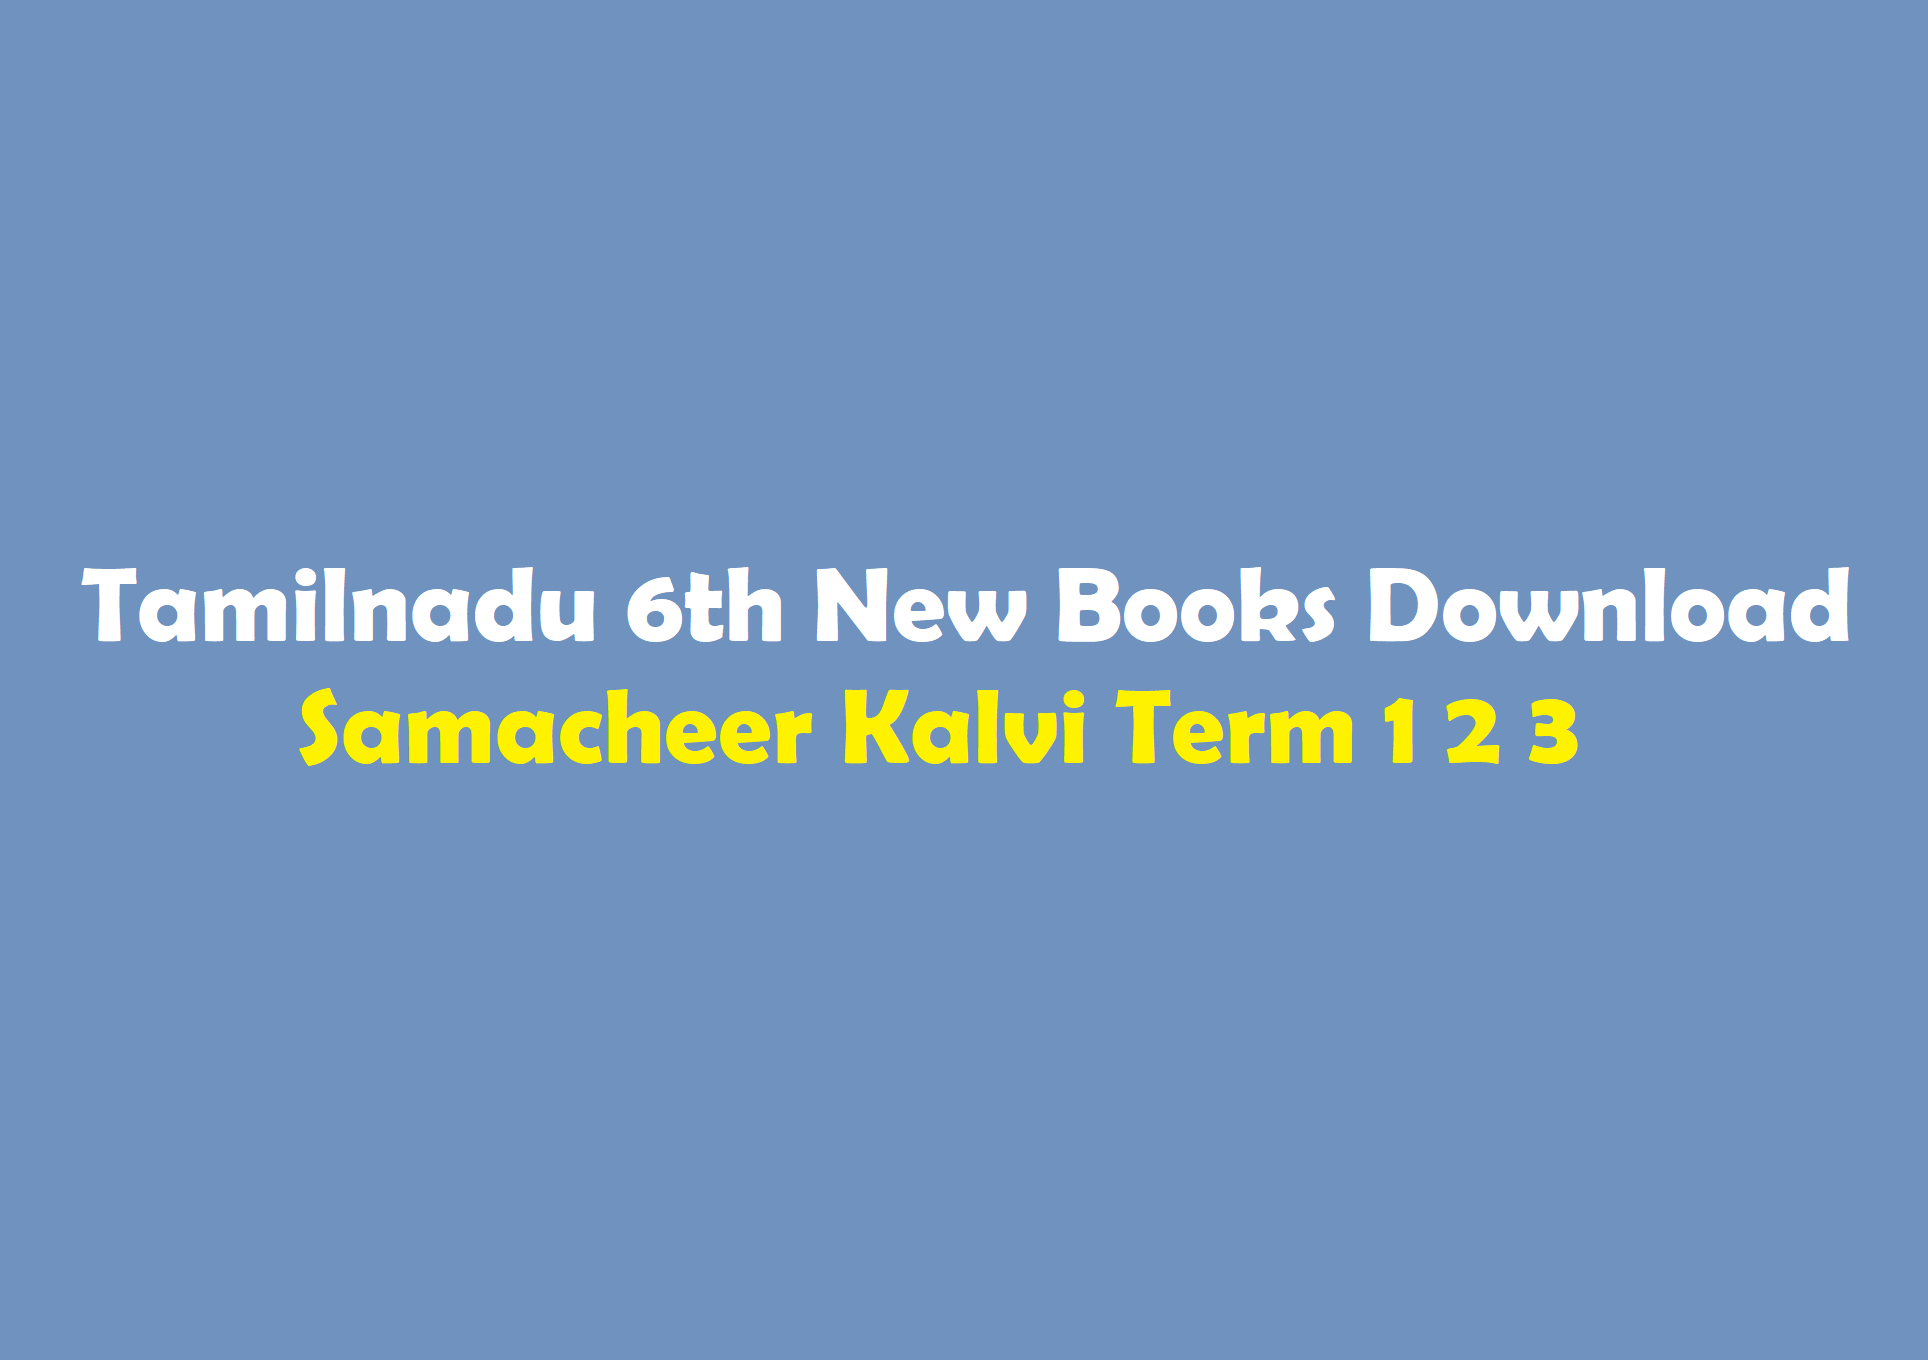 Tamilnadu 6th New Books Free Download Samacheer Kalvi Term 1 2 3